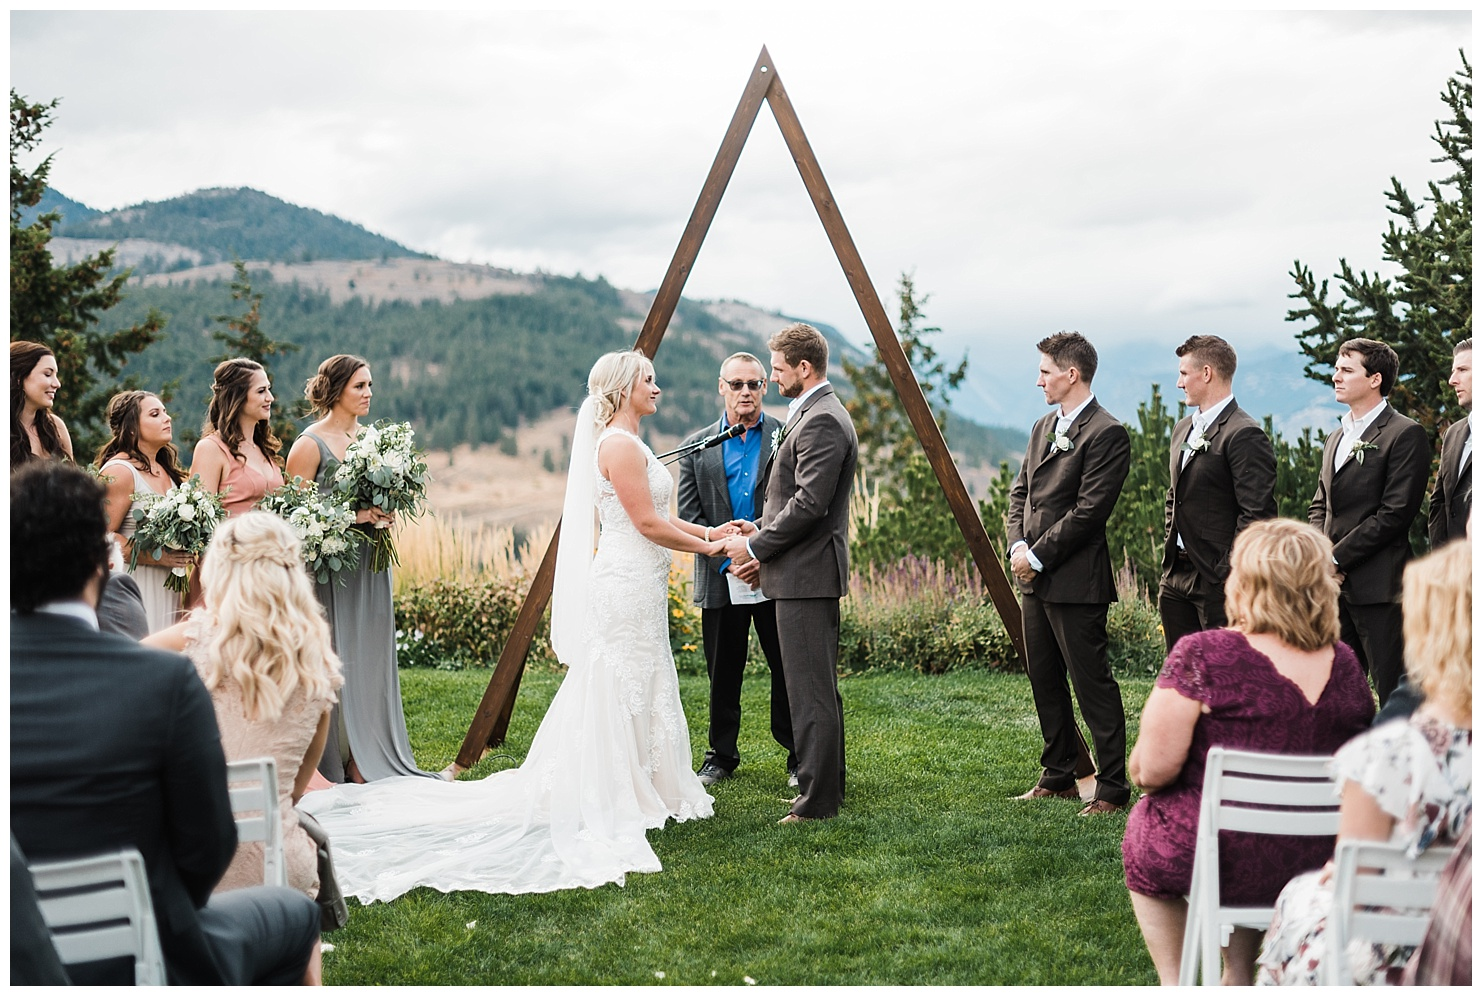 Ceremony site at Sun Mountain Lodge in Winthrop, WA